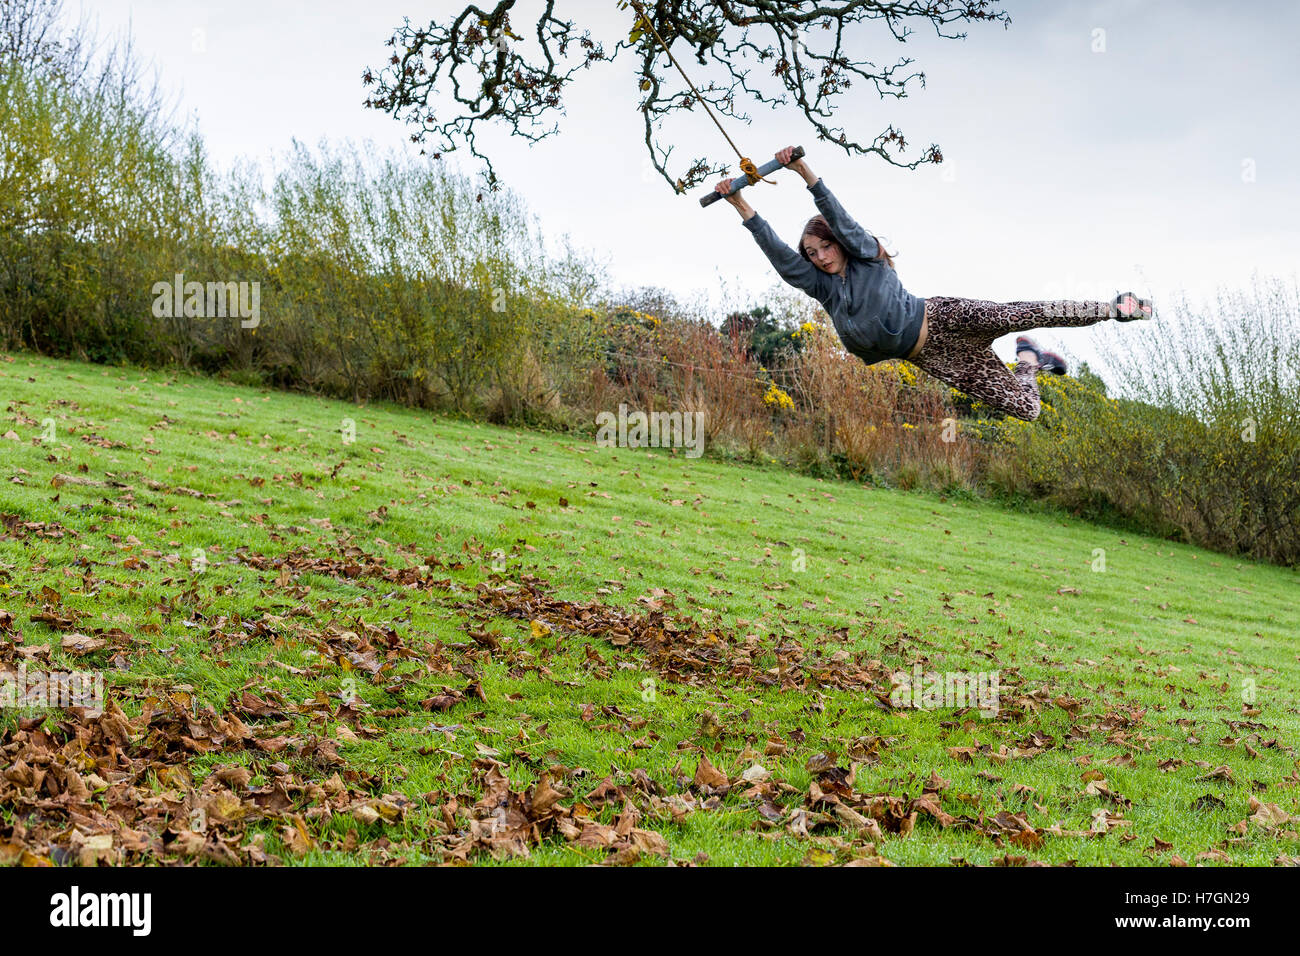 Teenage girl swinging on a rope swing outdoors  Model Release: Yes.  Property Release: Yes. - Stock Image